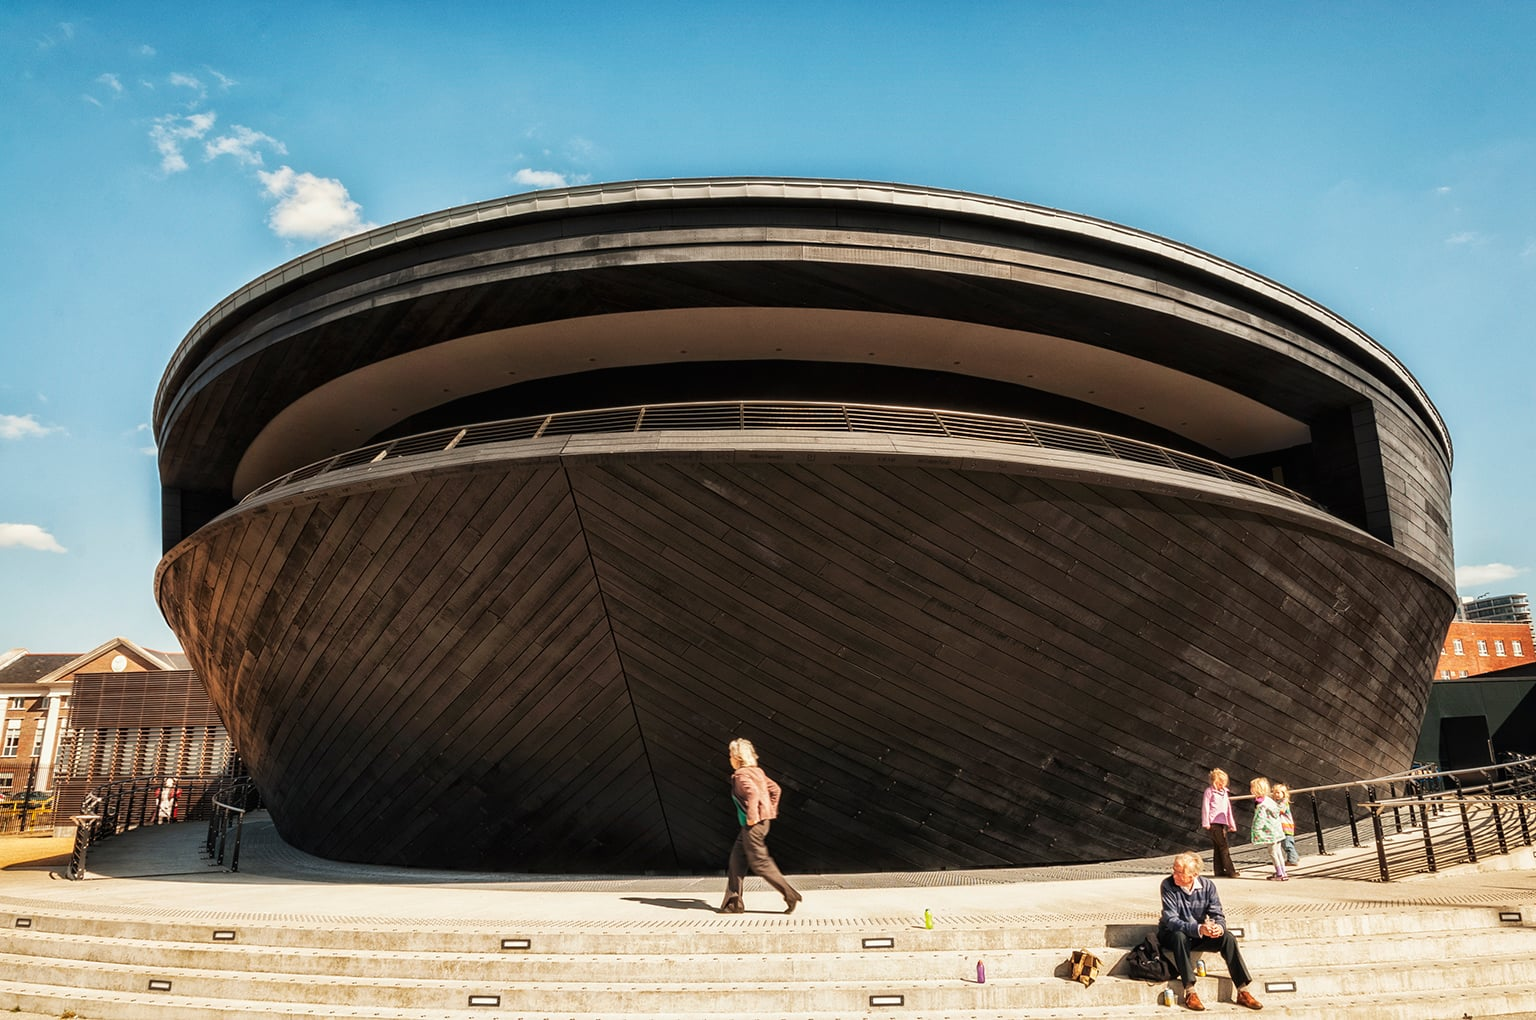 1. Mary Rose Museum, Hampshire (part of Portsmouth Historic Dockyard) - Free entry with National Art Pass